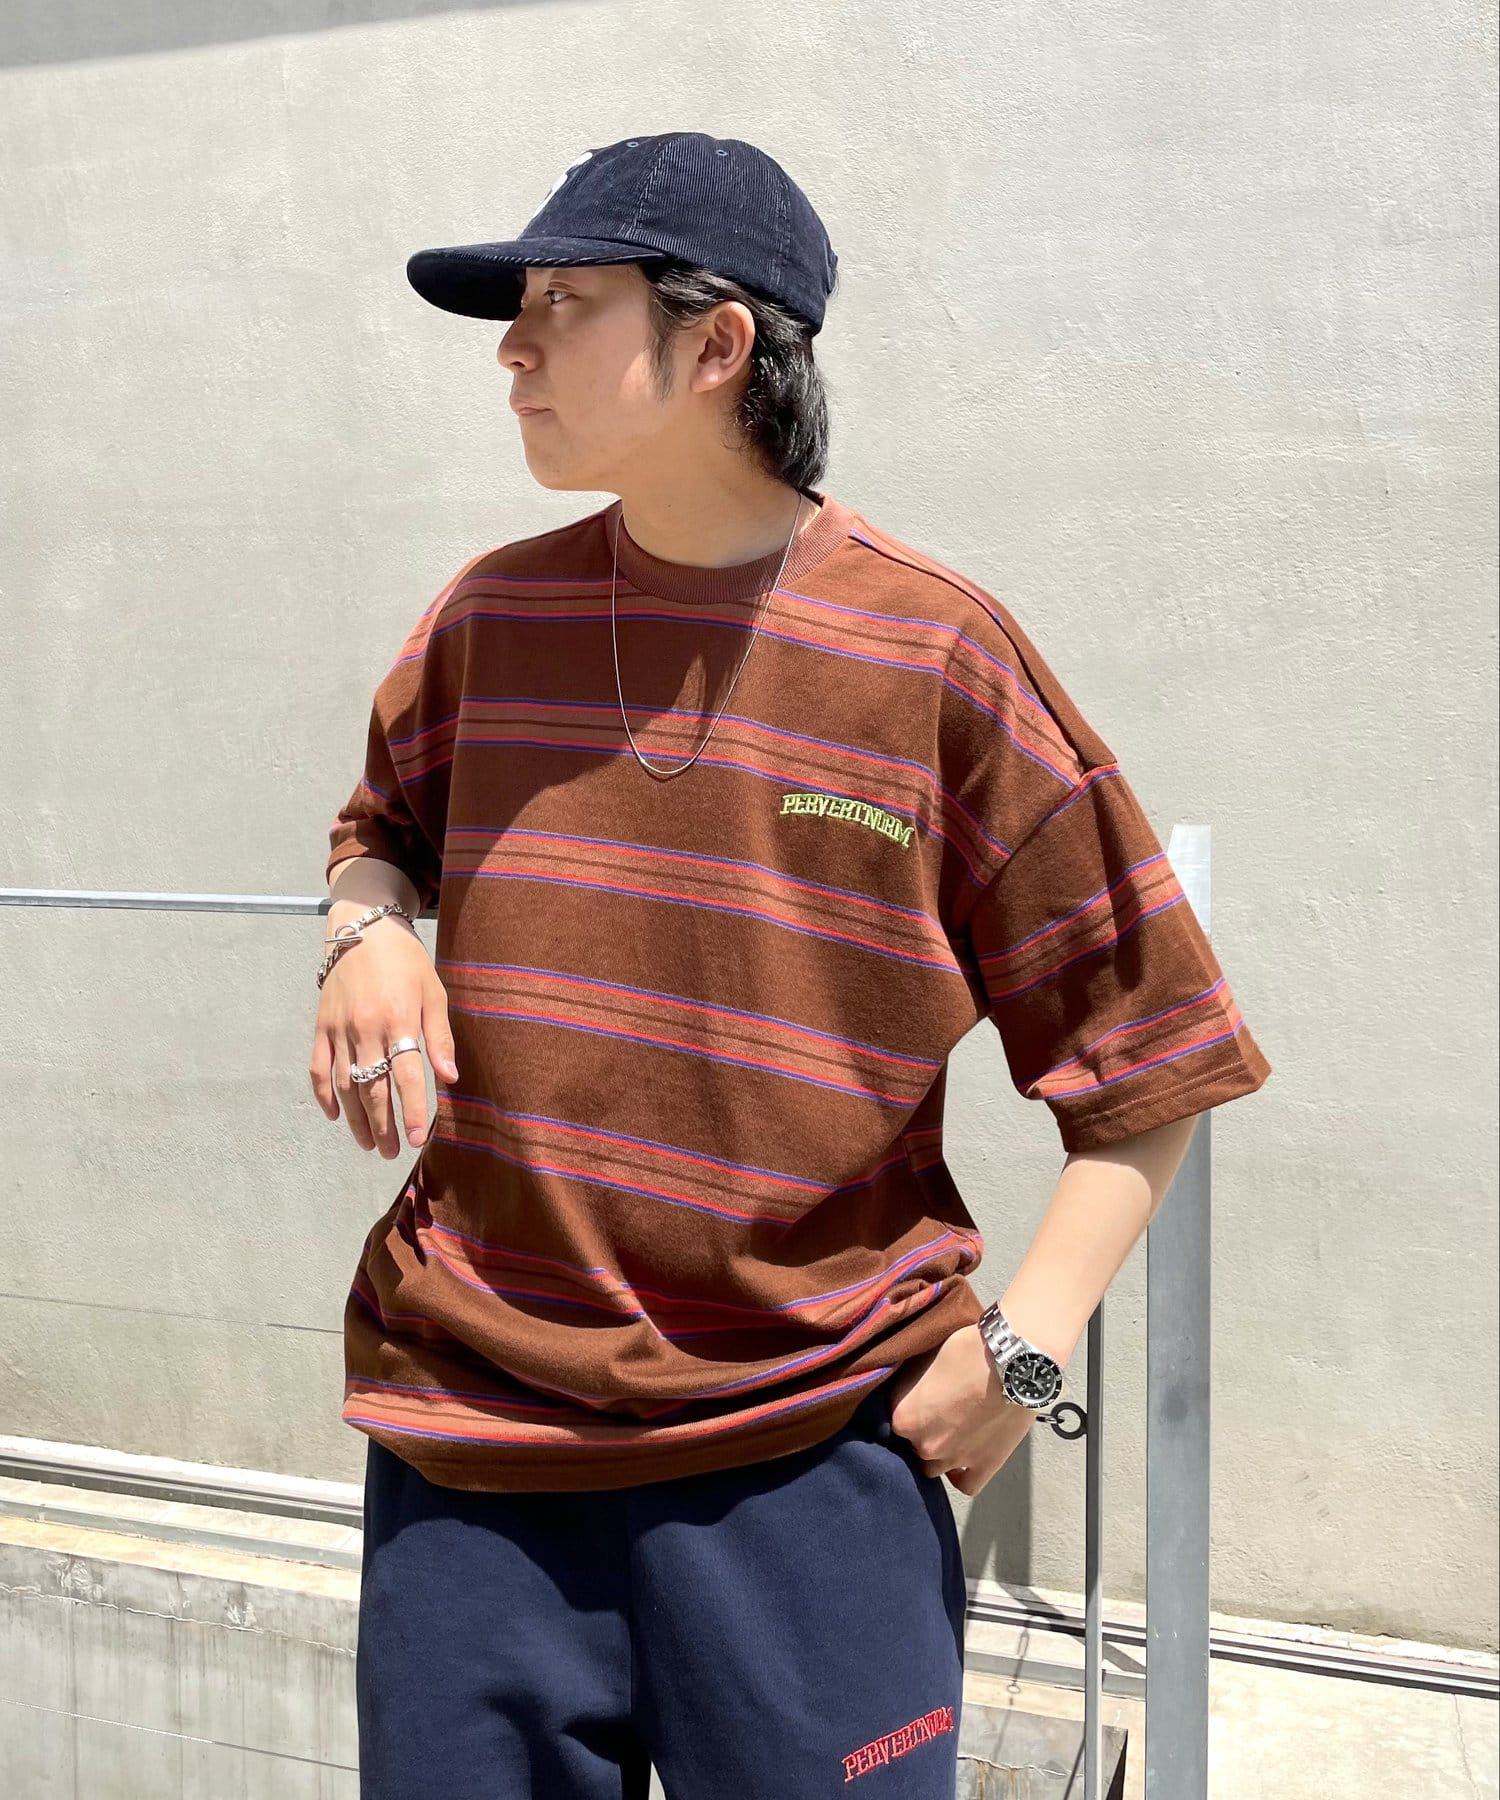 WHO'S WHO gallery(フーズフーギャラリー) 【KOOKY'N/クーキー】ボーダーTEE